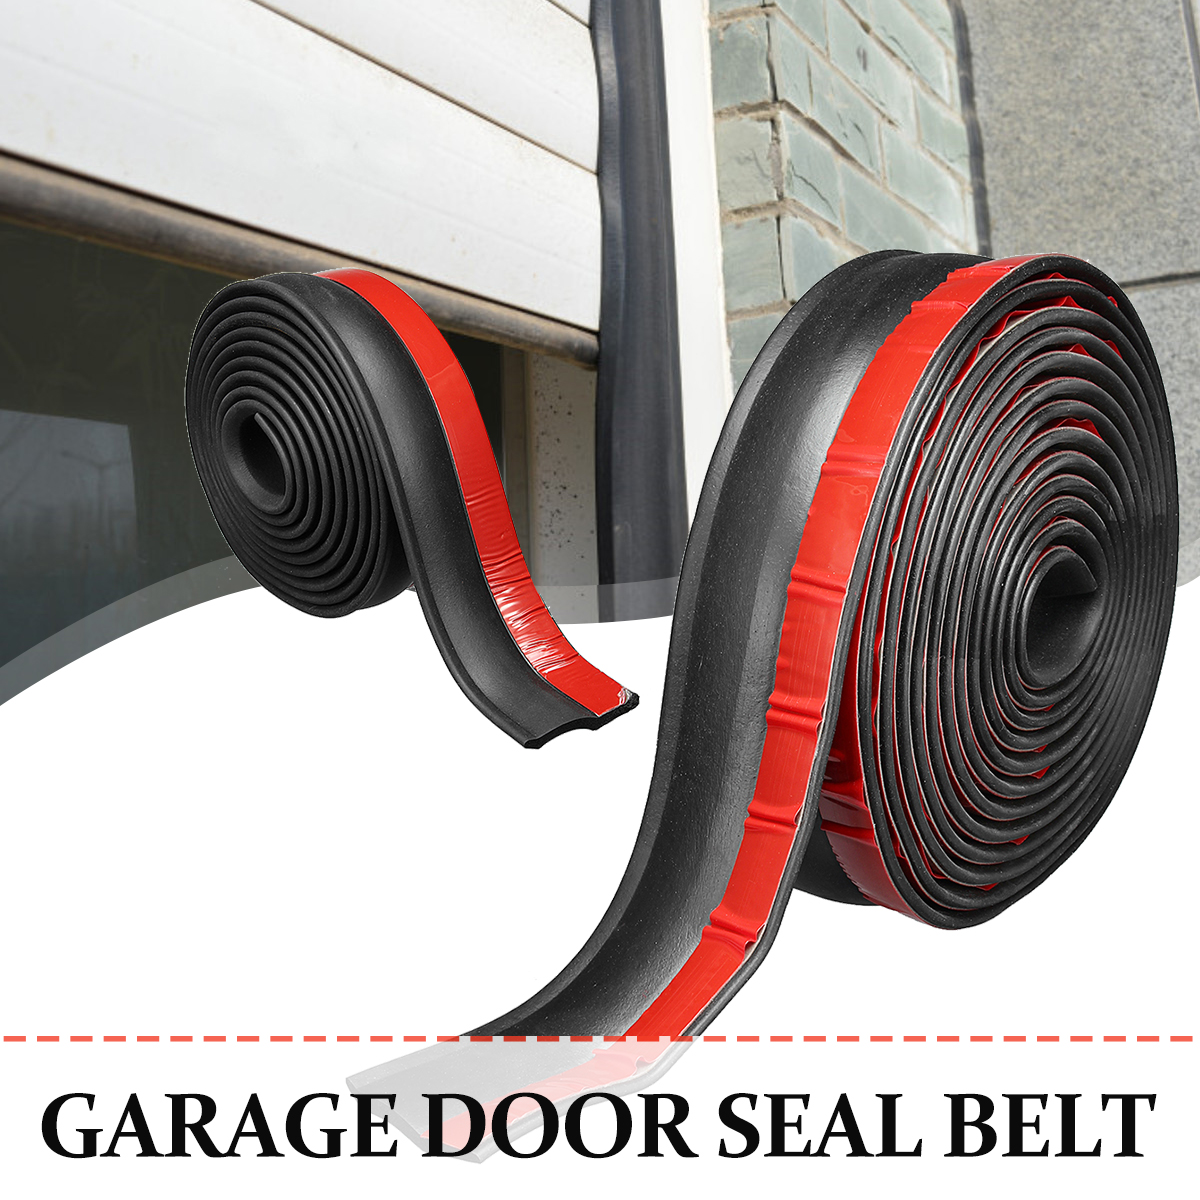 3 5 5 5m Garage Door Bottom Seal Weather Stripping Rubber Seal Strip Electric Door Bottom Water Smoke Noise Seal Bumper Strip Gaskets Aliexpress